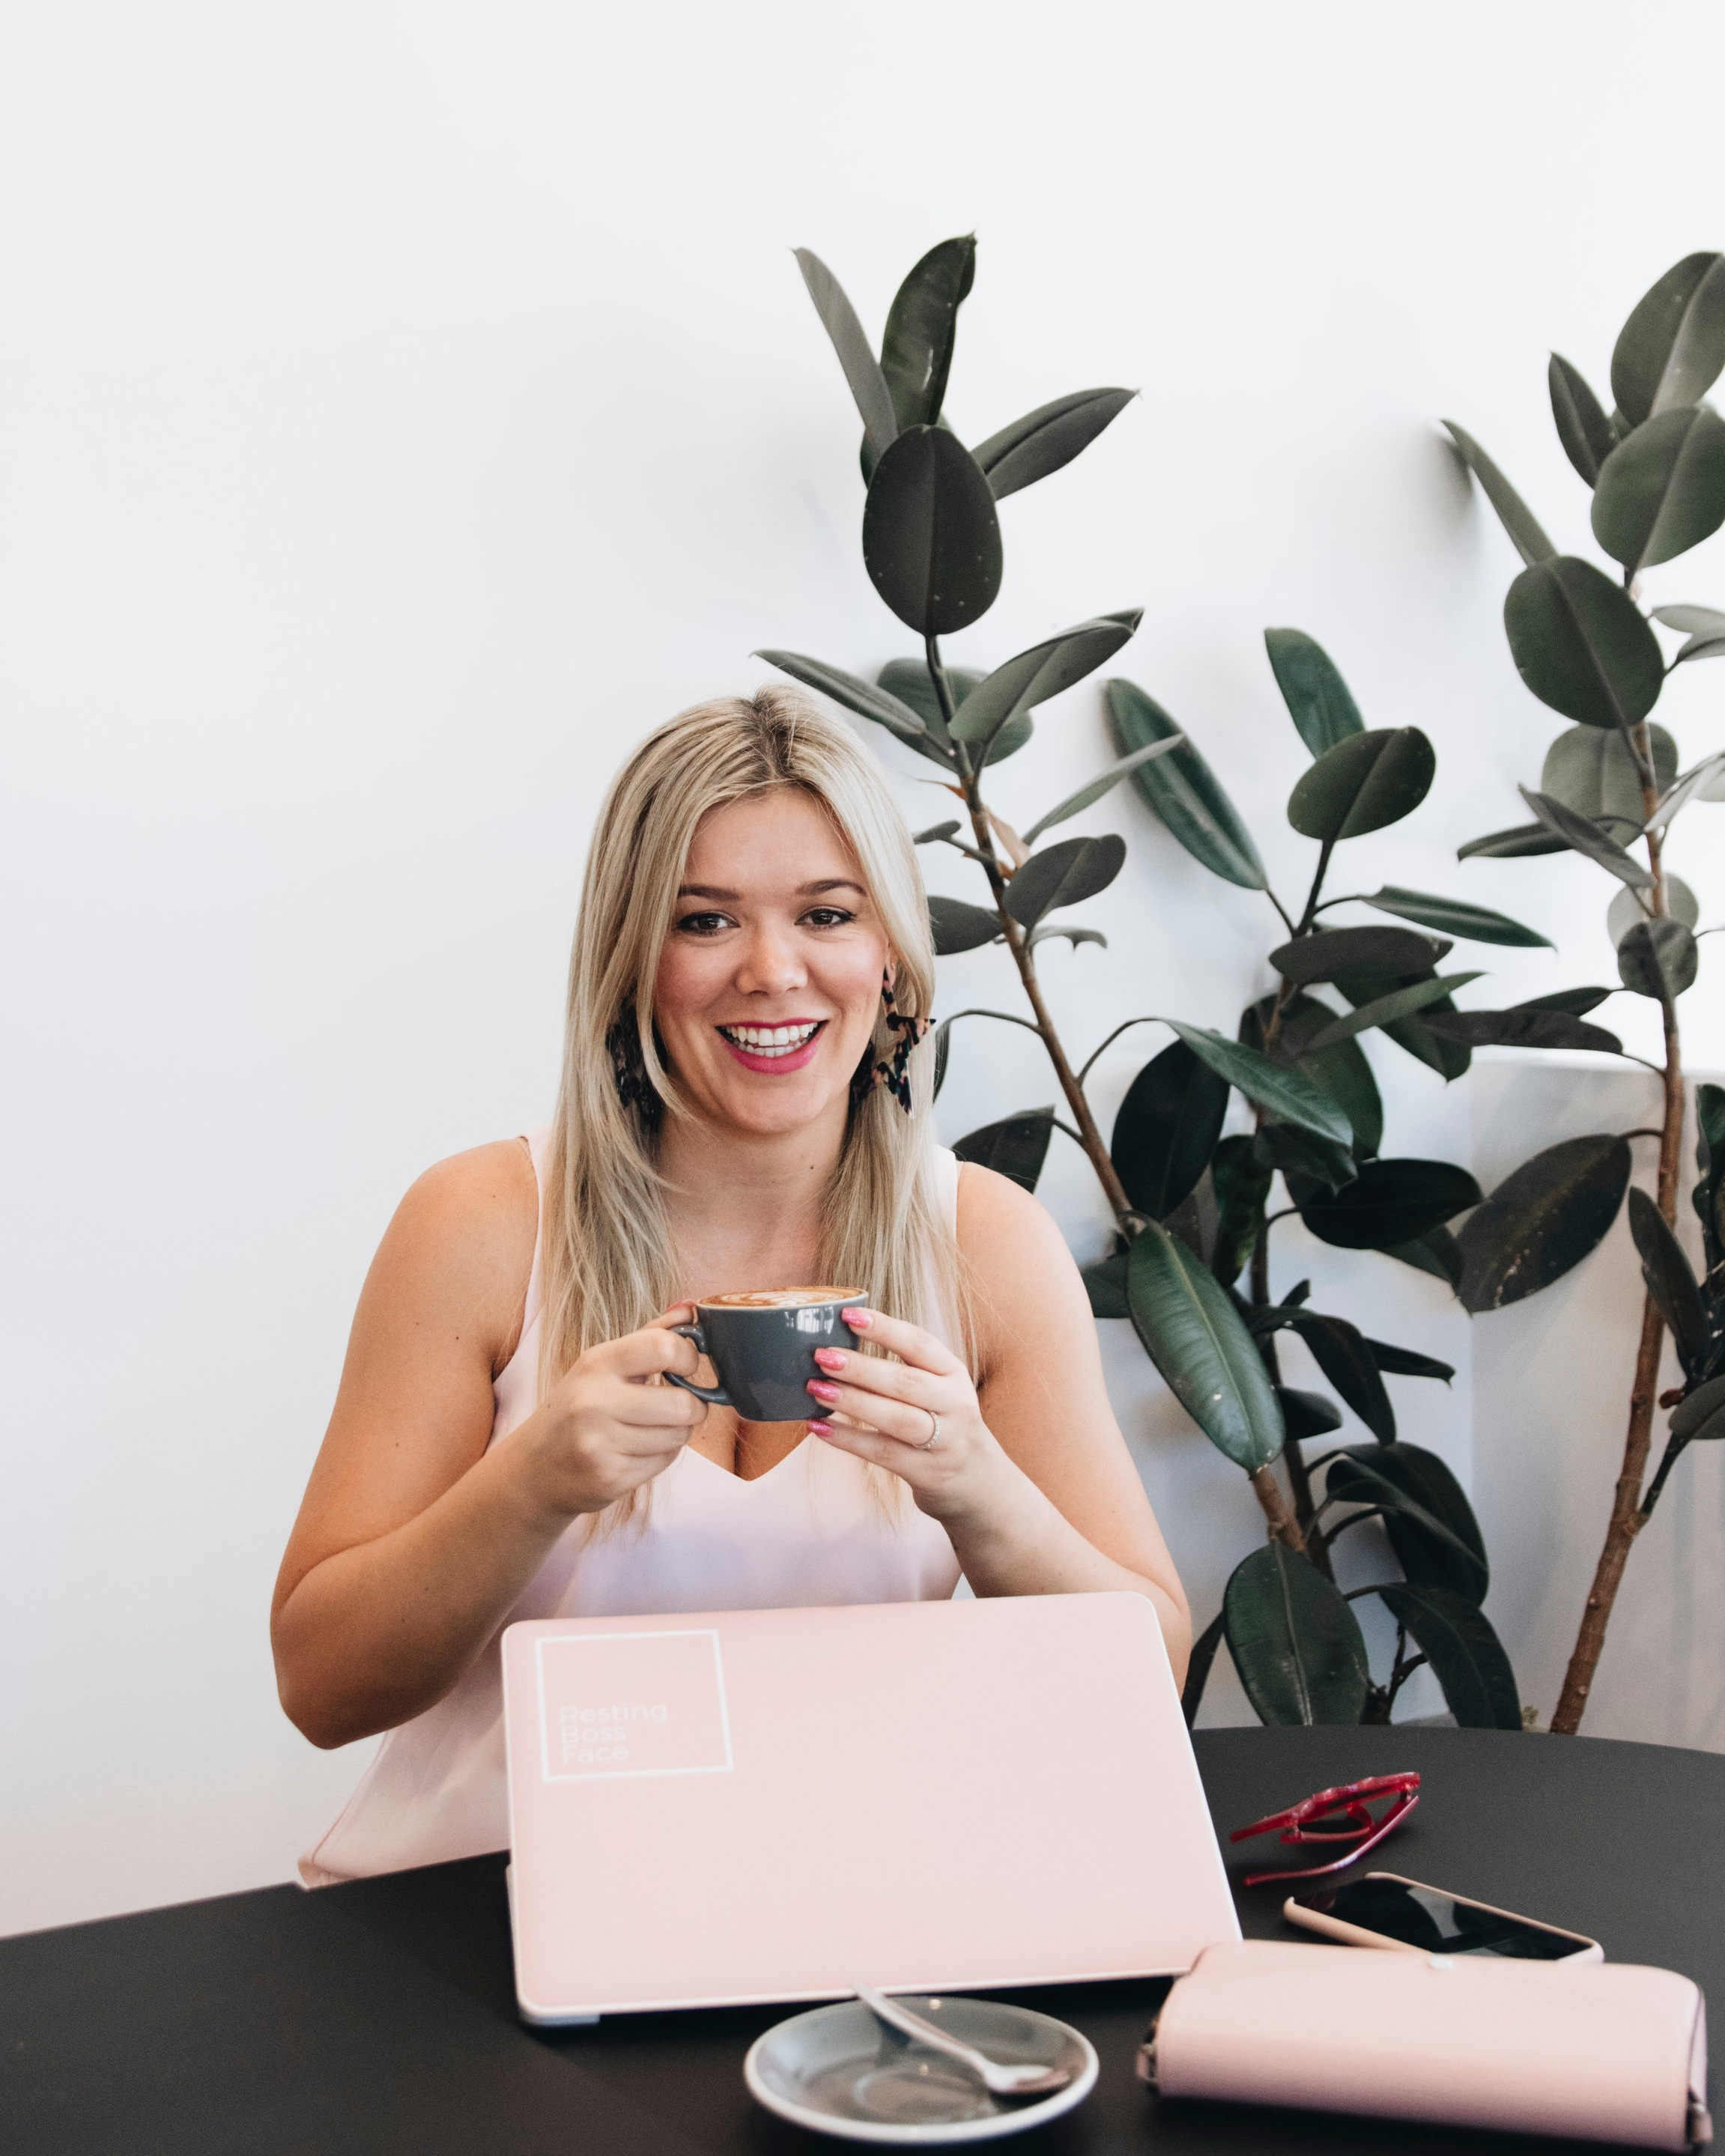 Hi, I am Tara! - An 8 figure entrepreneur, business mentor to female entrepreneurs and a keynote speaker on female entrepreneurship.I founded Resting Boss Face to help female entrepreneurs get their business dreams out of their heads and into the world.My goal is to help 2020 females create and build a life they love through entrepreneurship by 2020.